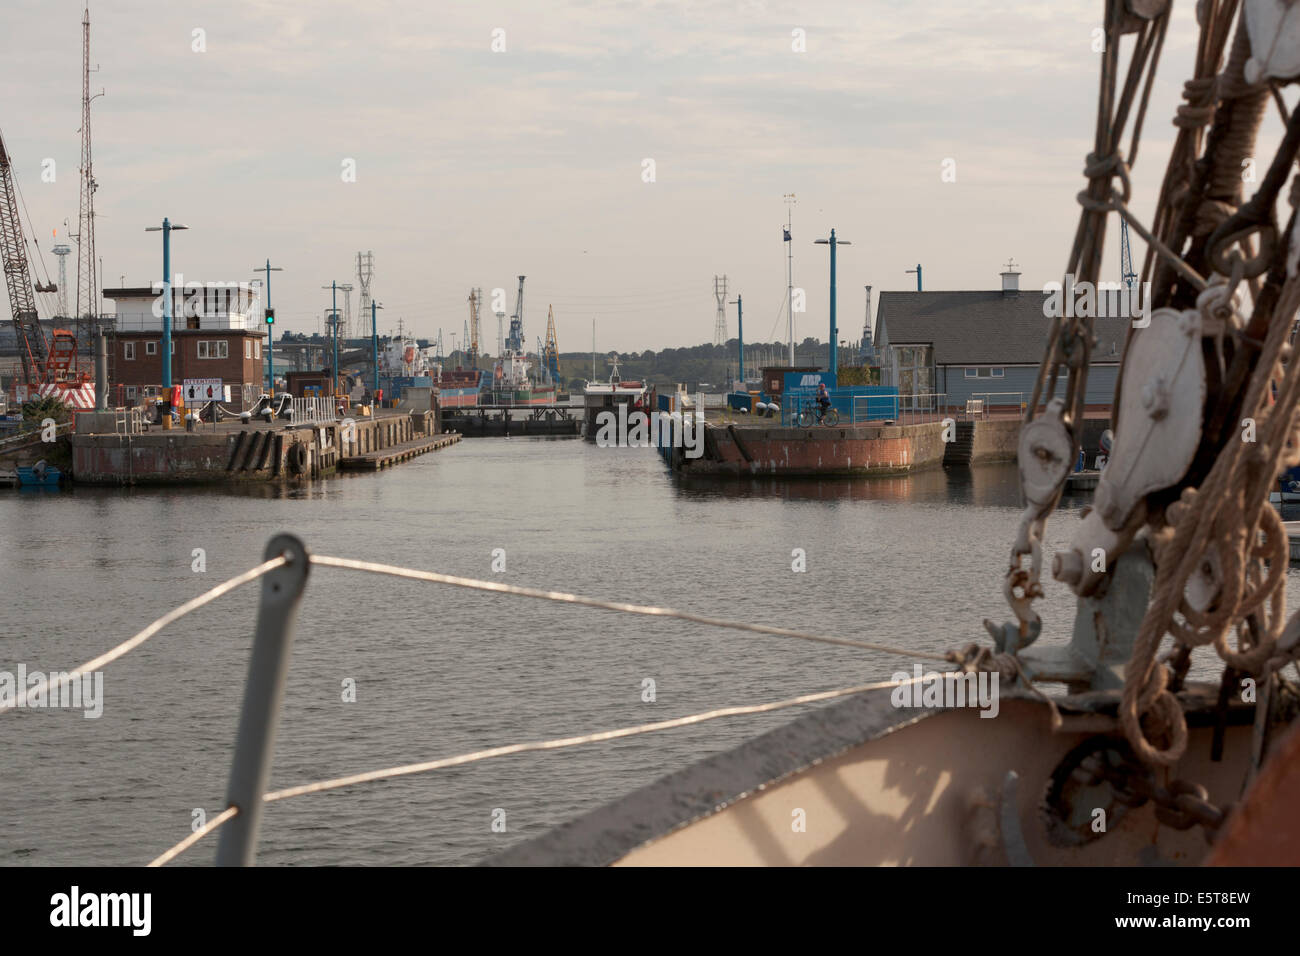 Bow of barge entering lock gates terminal on River Orwell; Ipswich. - Stock Image